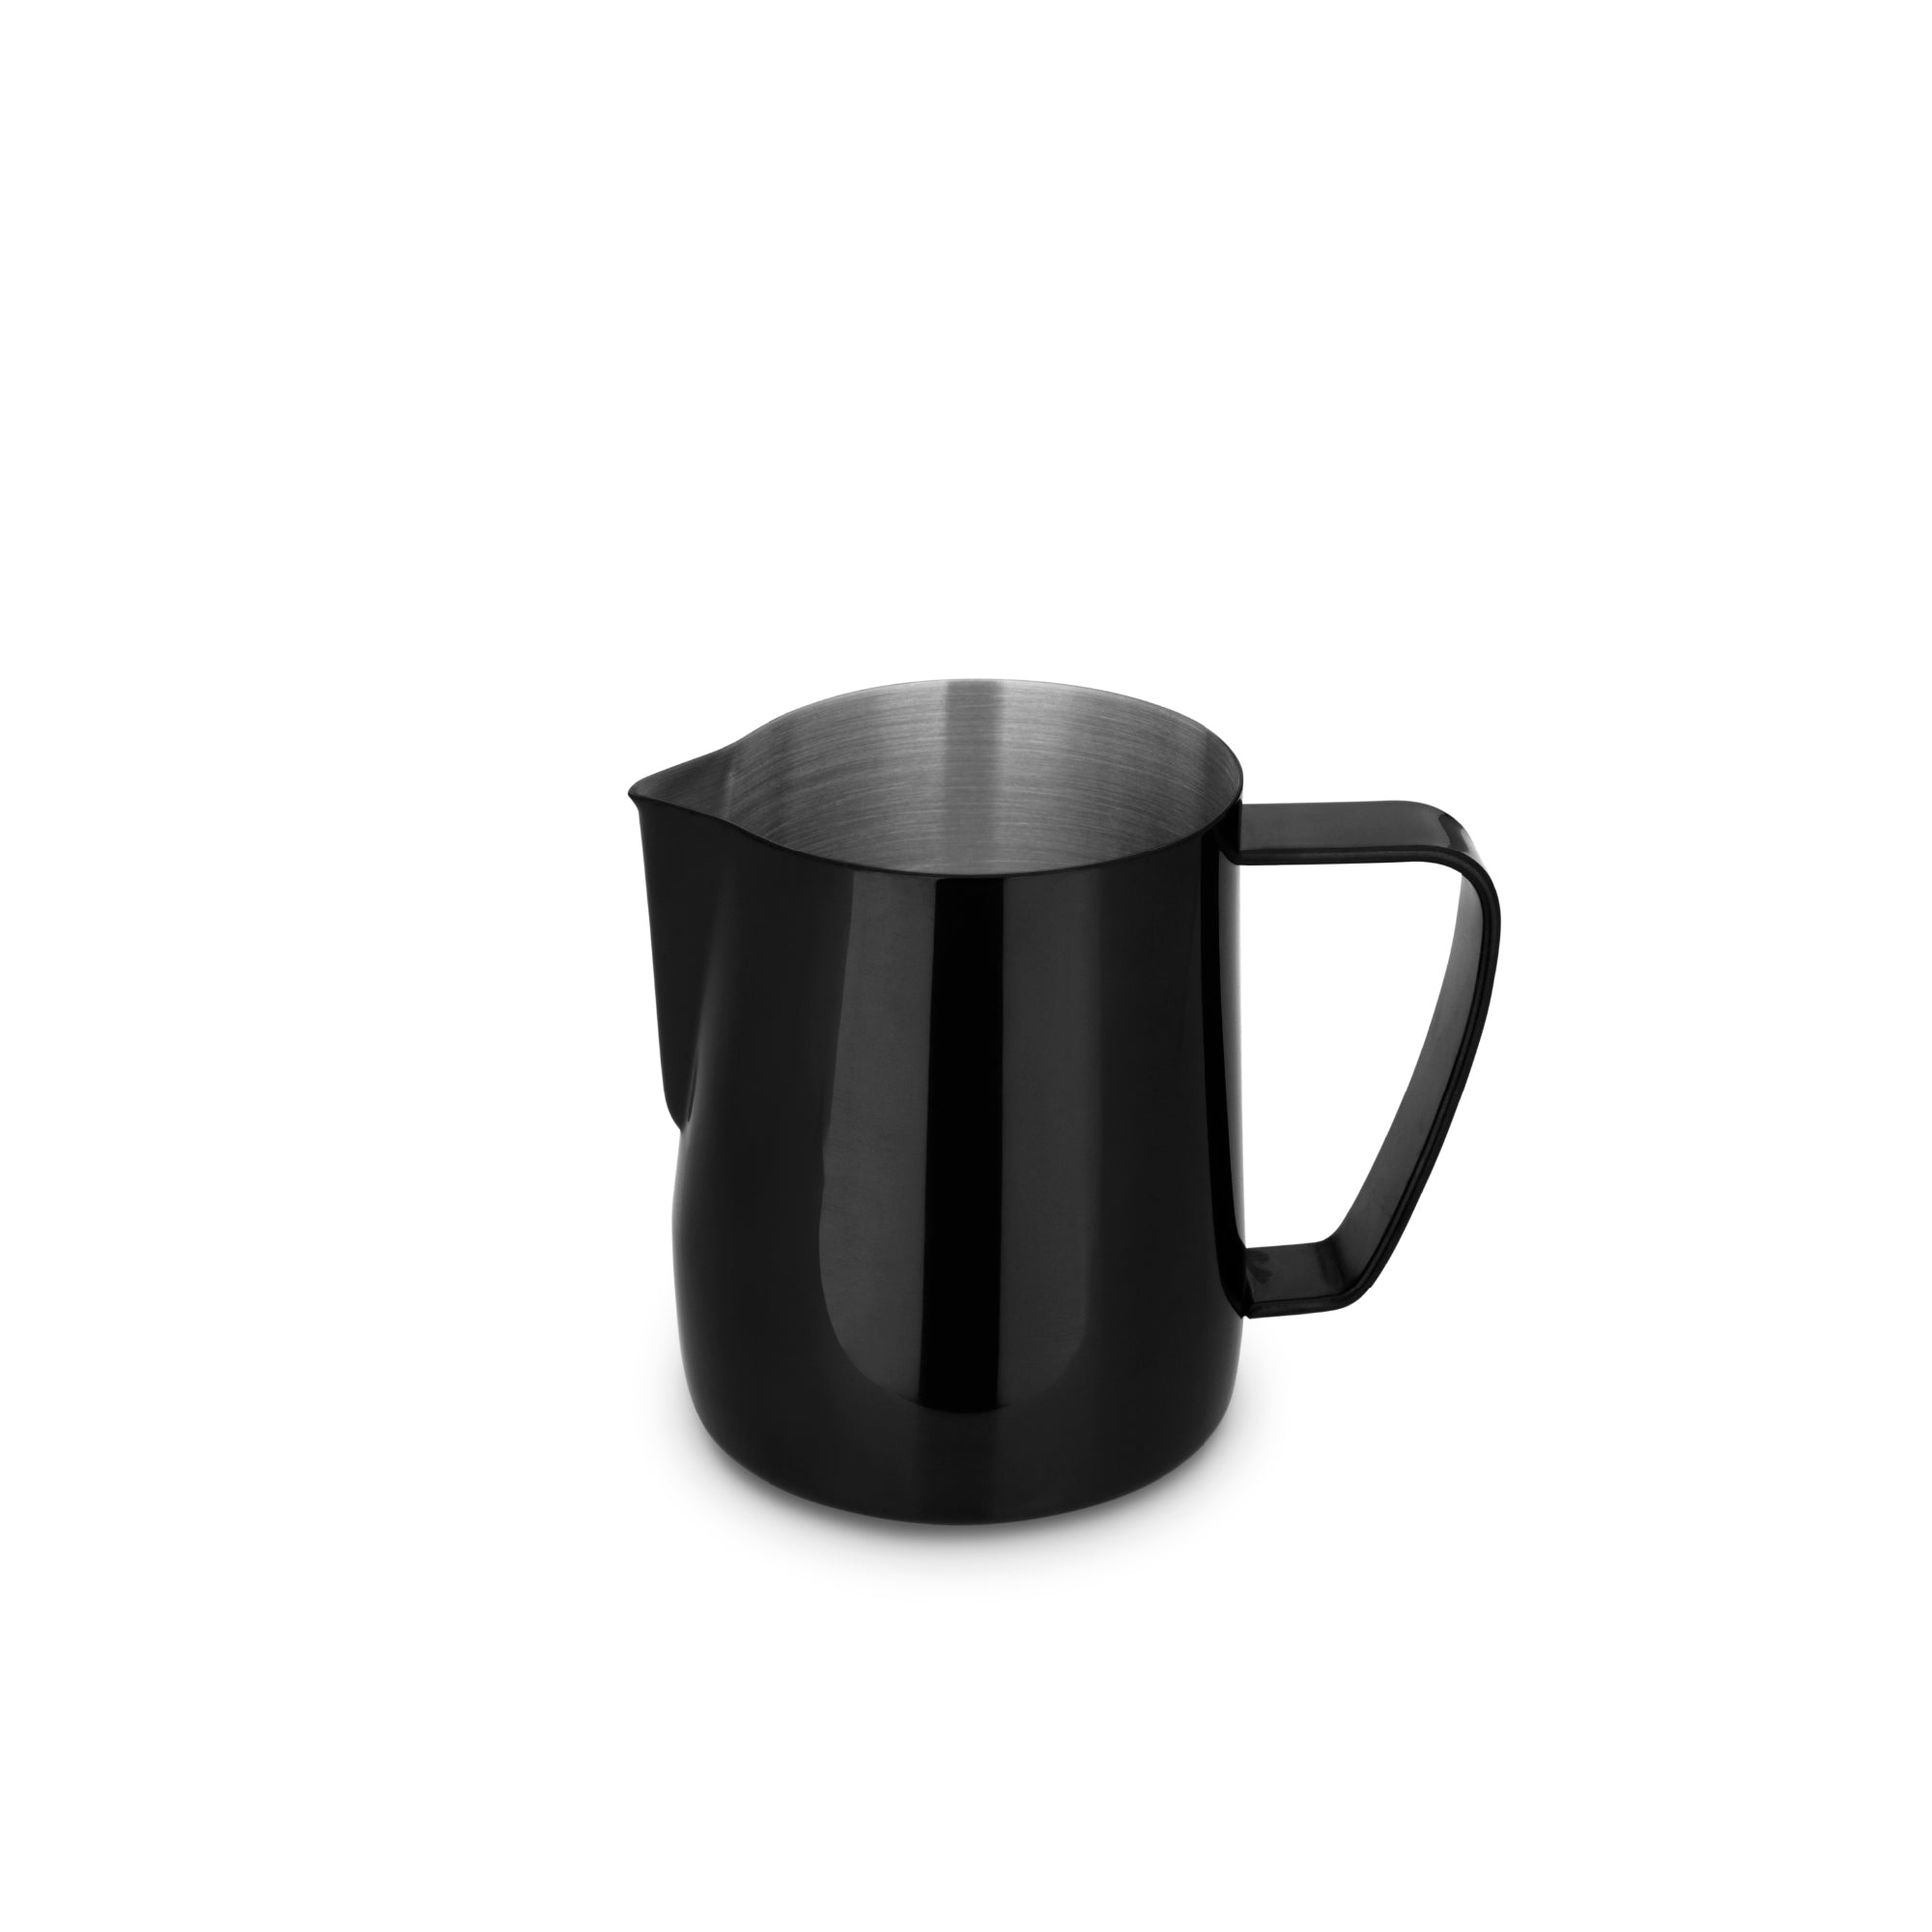 EspressoWorks Stainless Steel Milk Frothing Jug - Black (350ml)